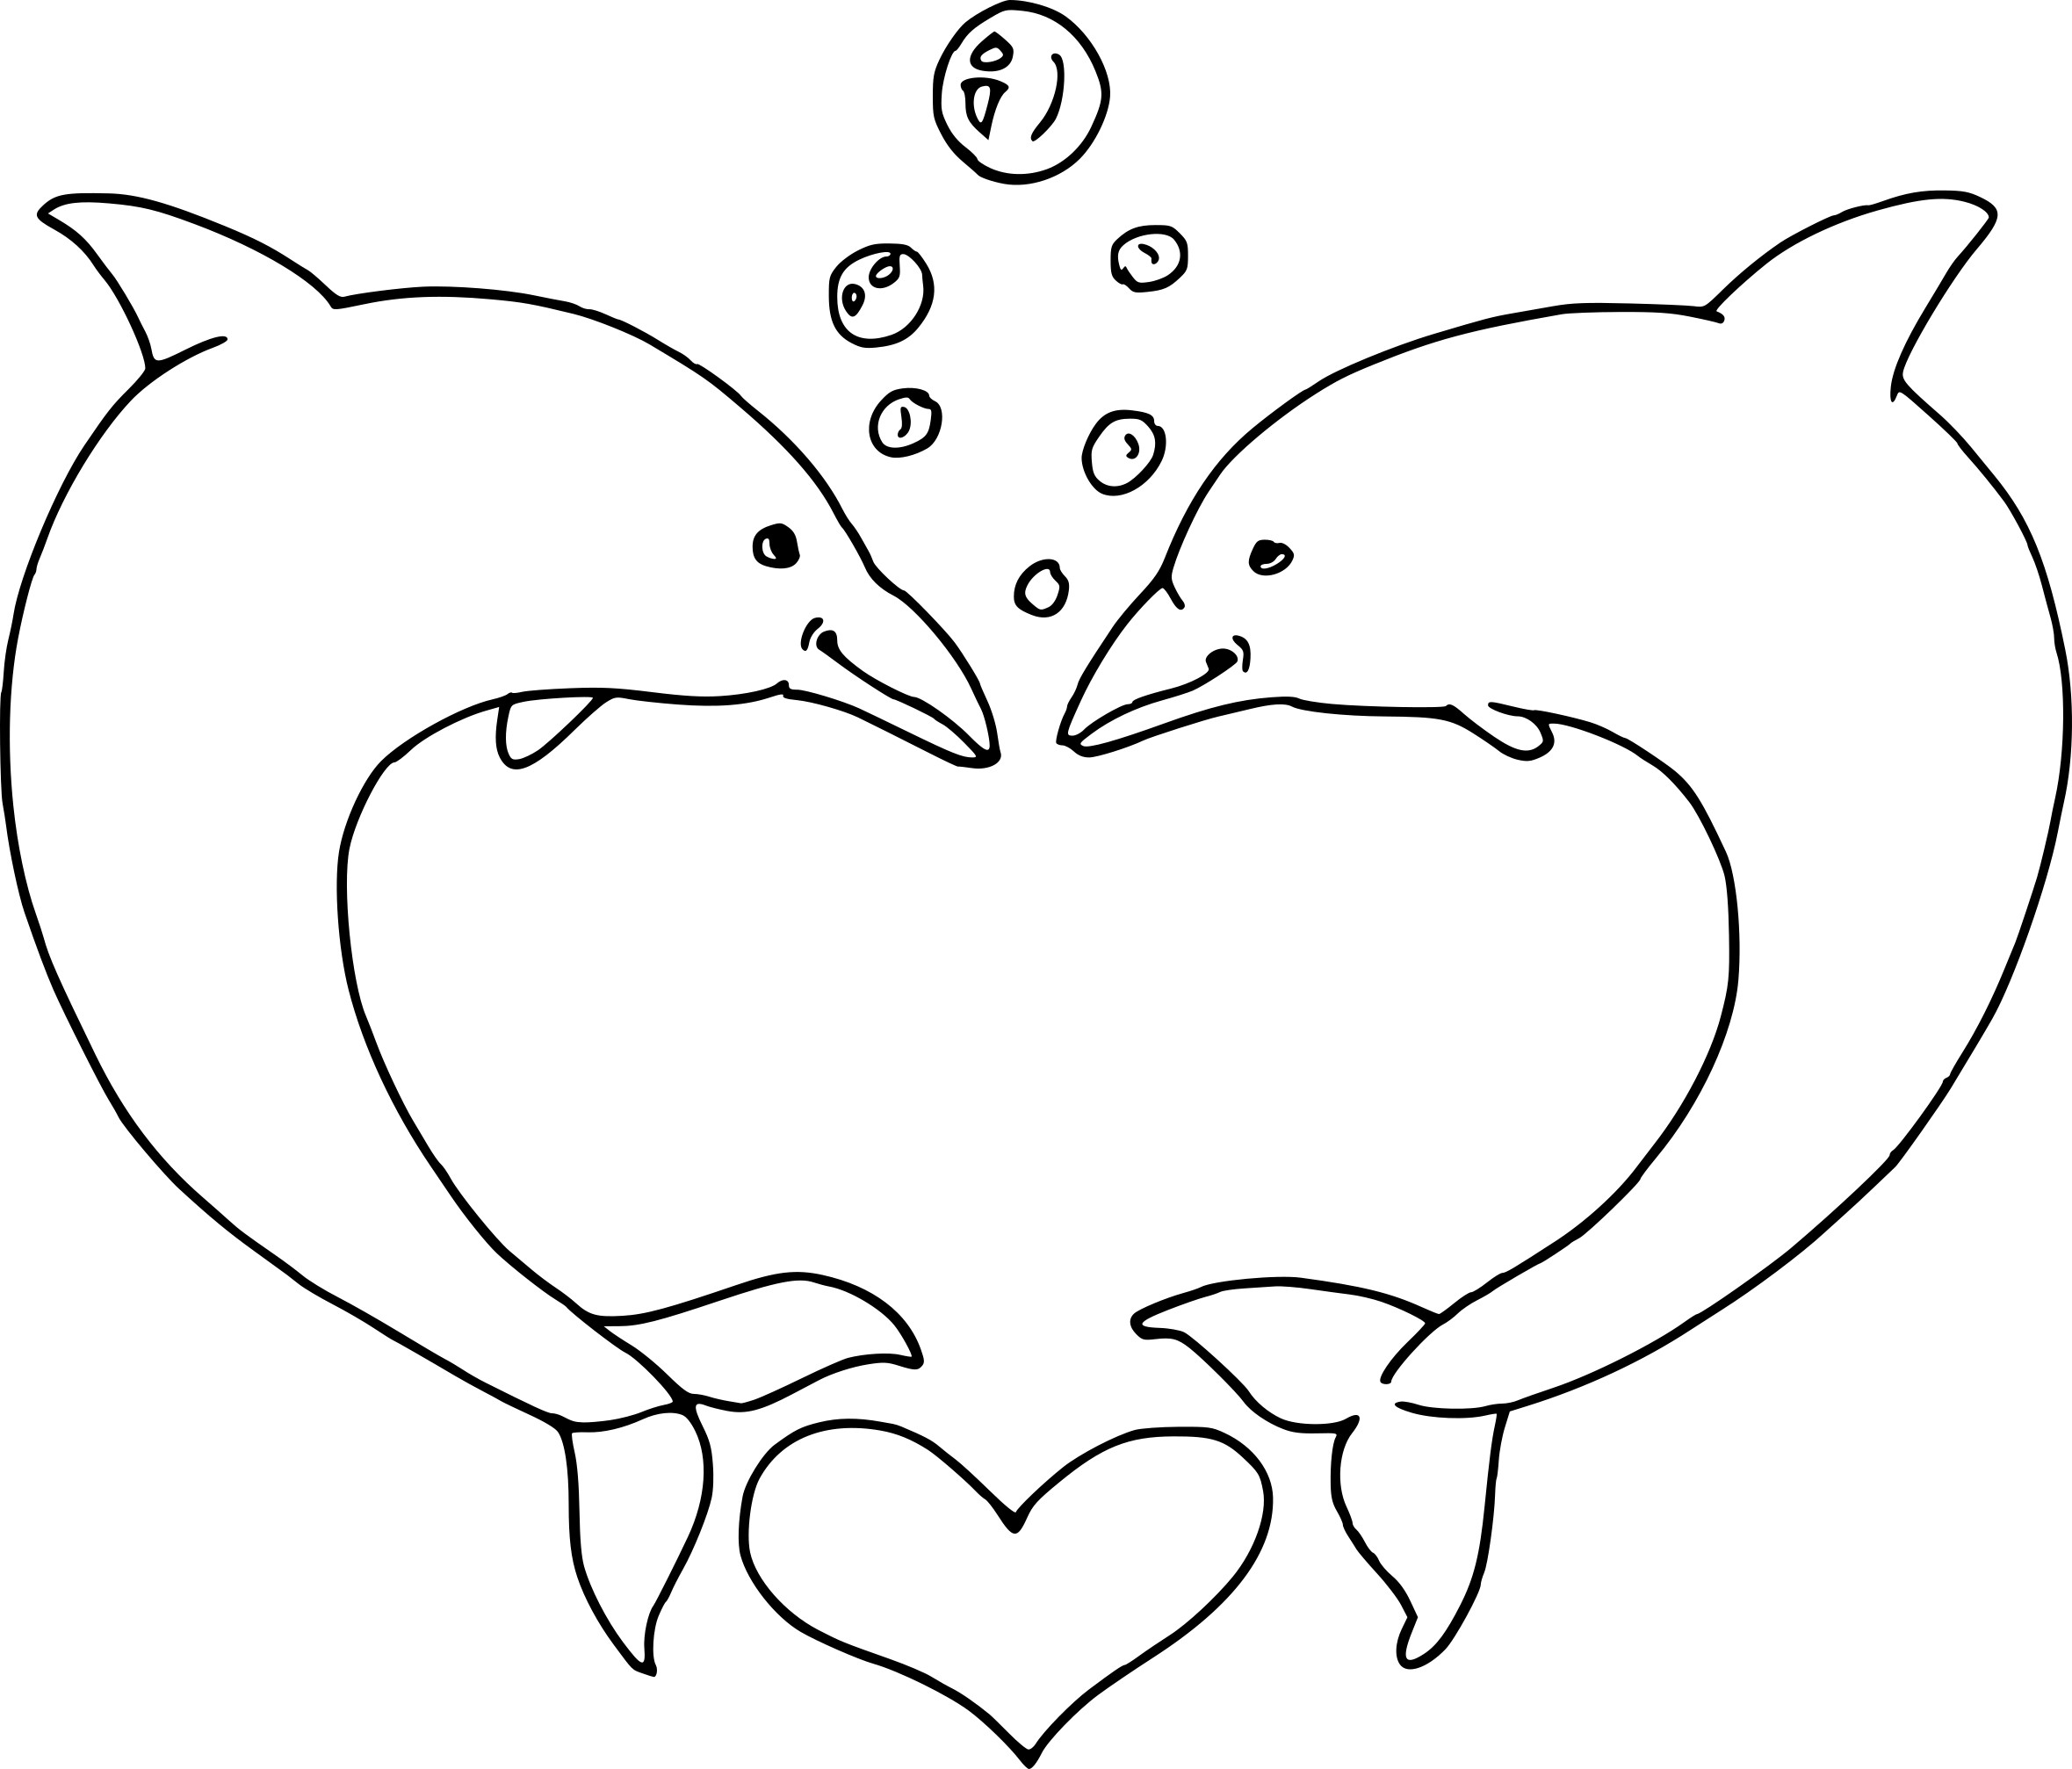 Chicken little coloring pages coloring pages - Dauphin dessin ...